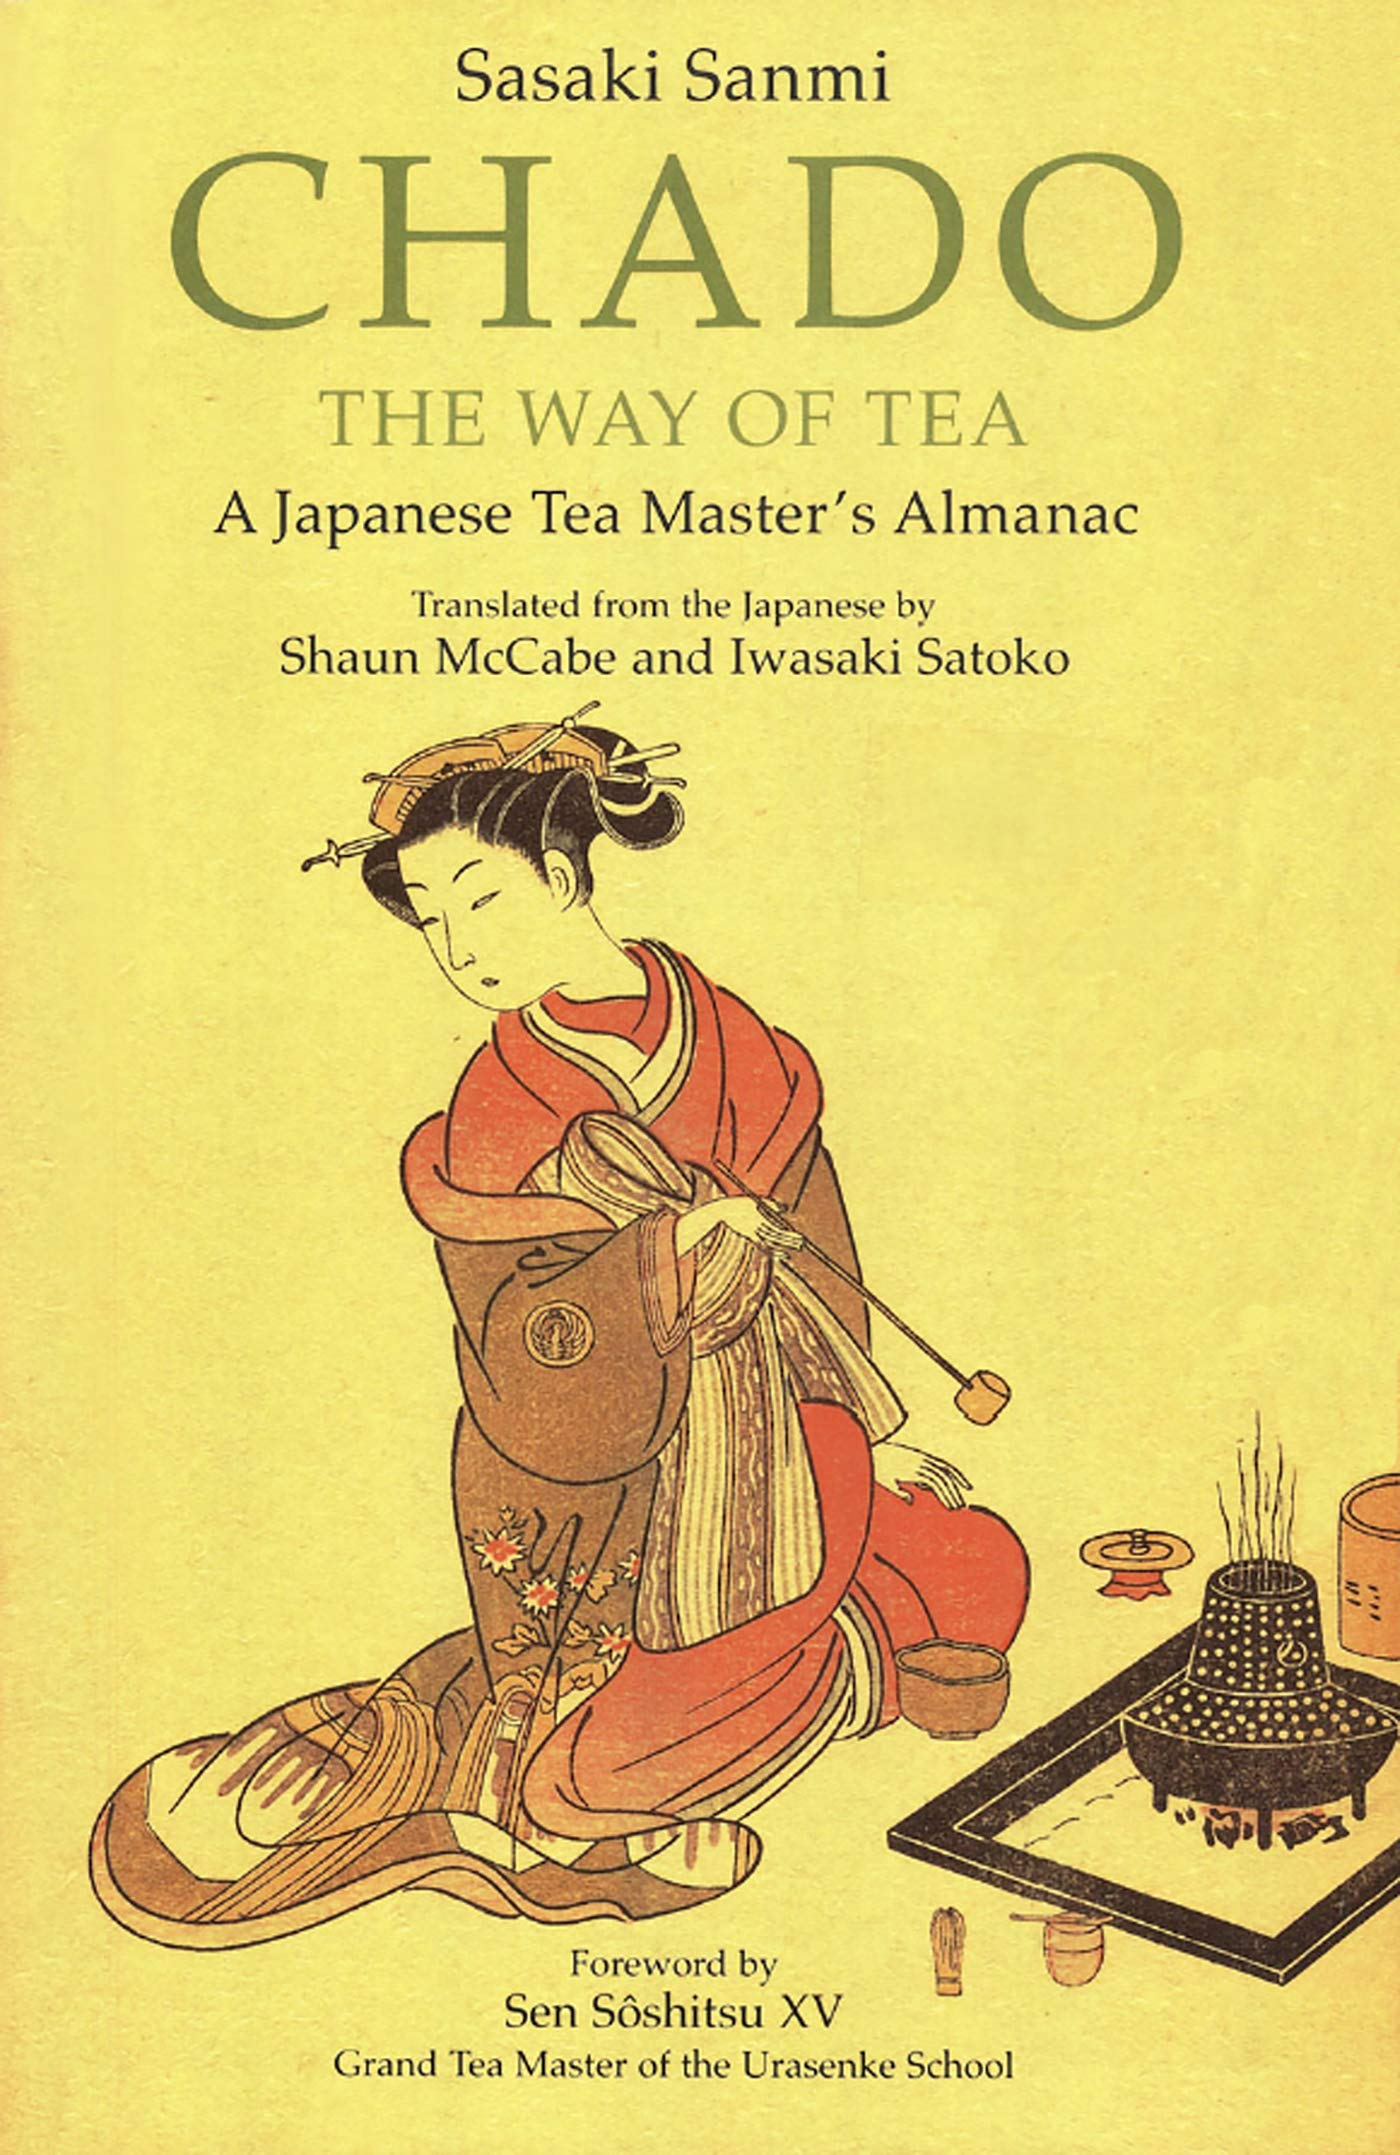 Download Chado The Way Of Tea: A Japanese Tea Master's Almanac (English Edition) 